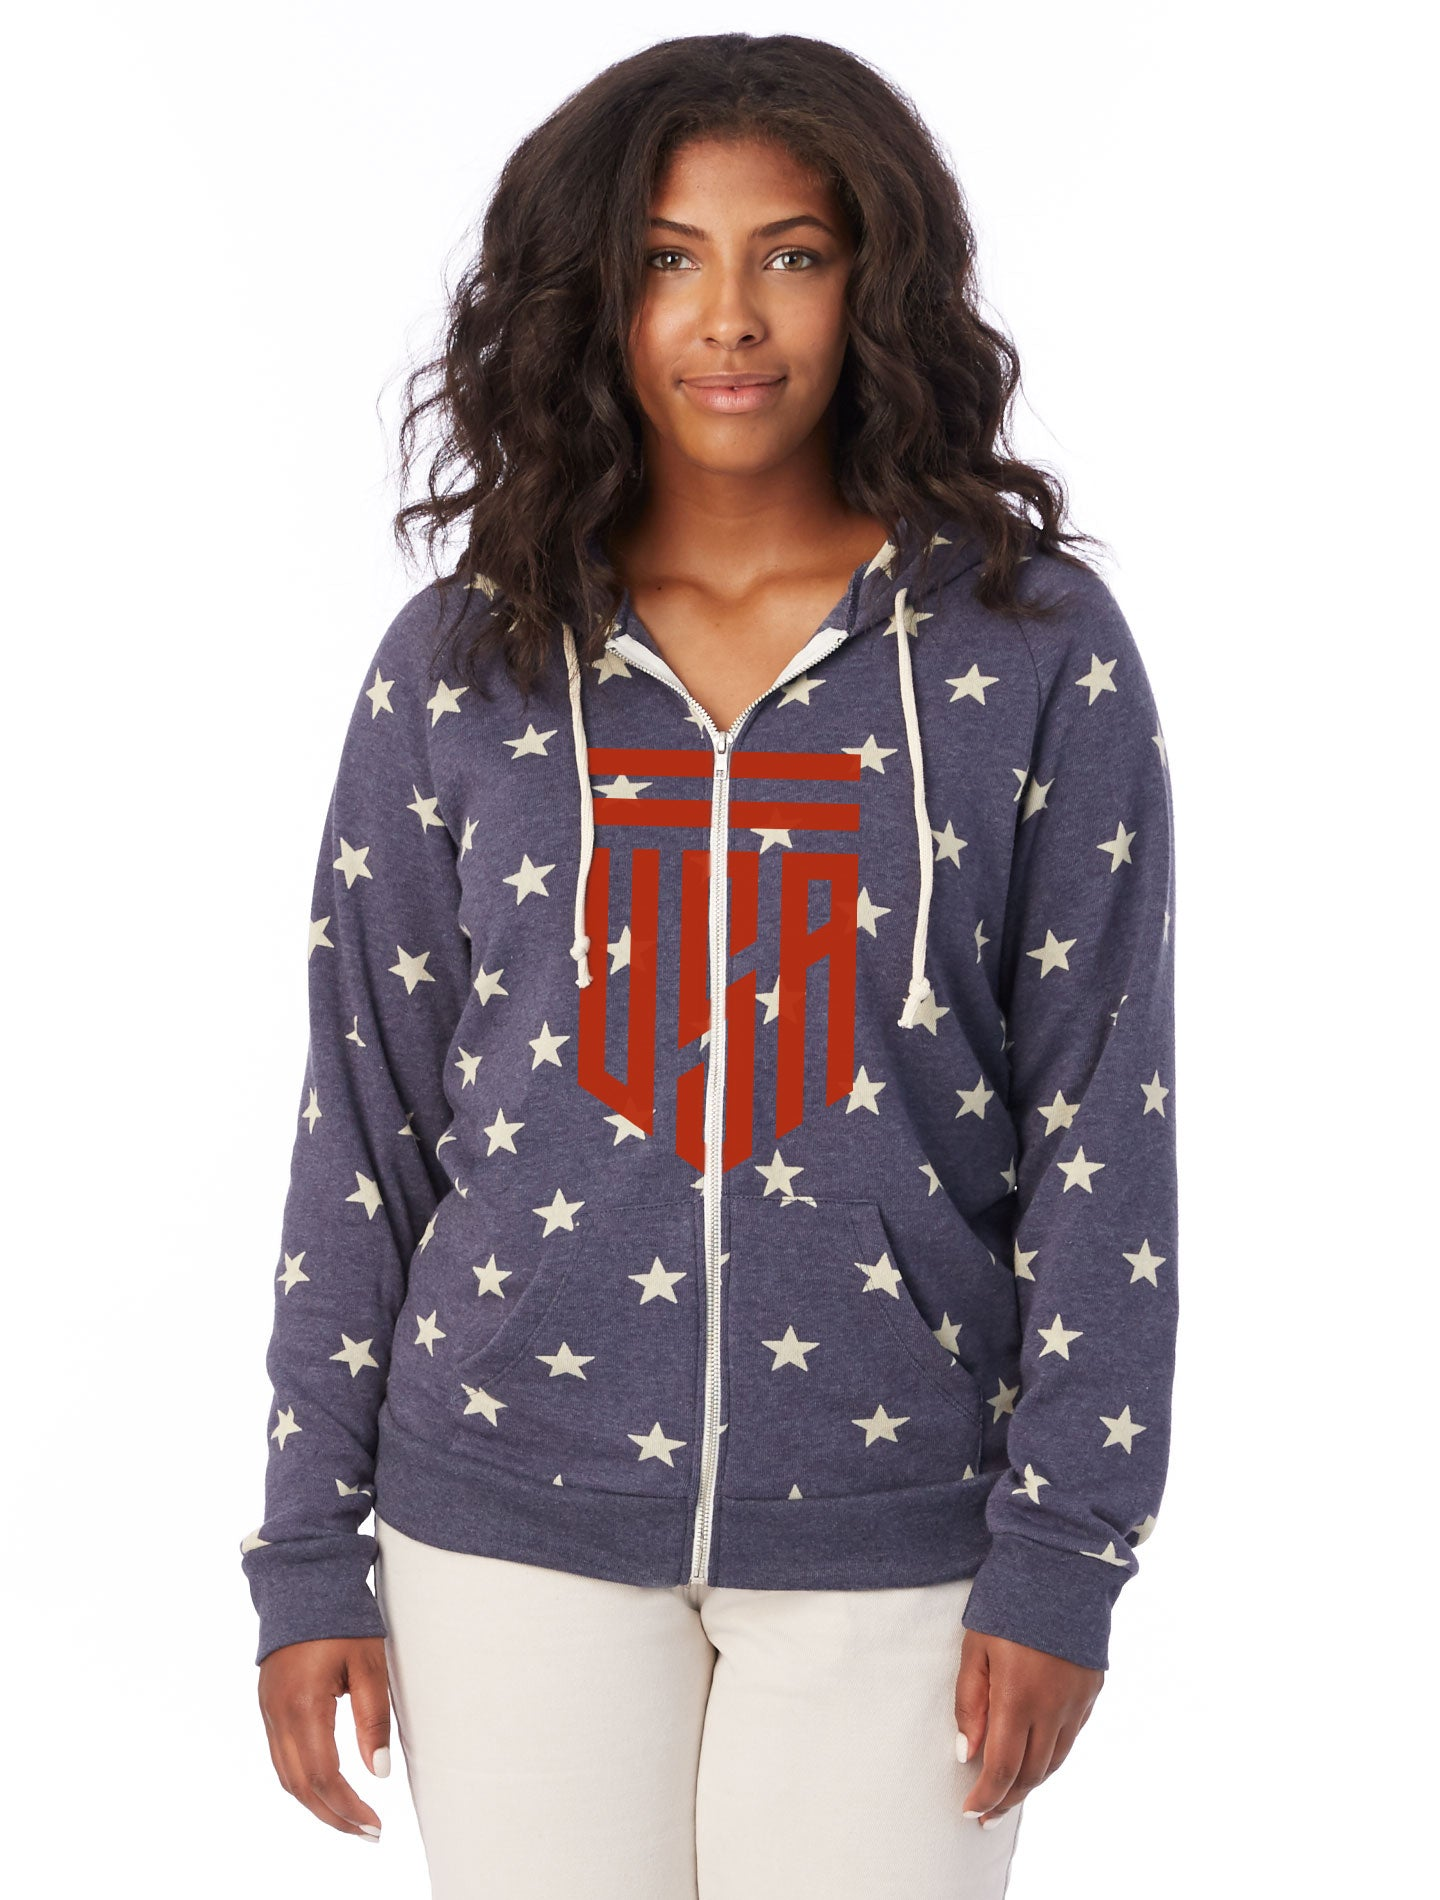 Womens USA Shield Stars Full Zip Hoodie